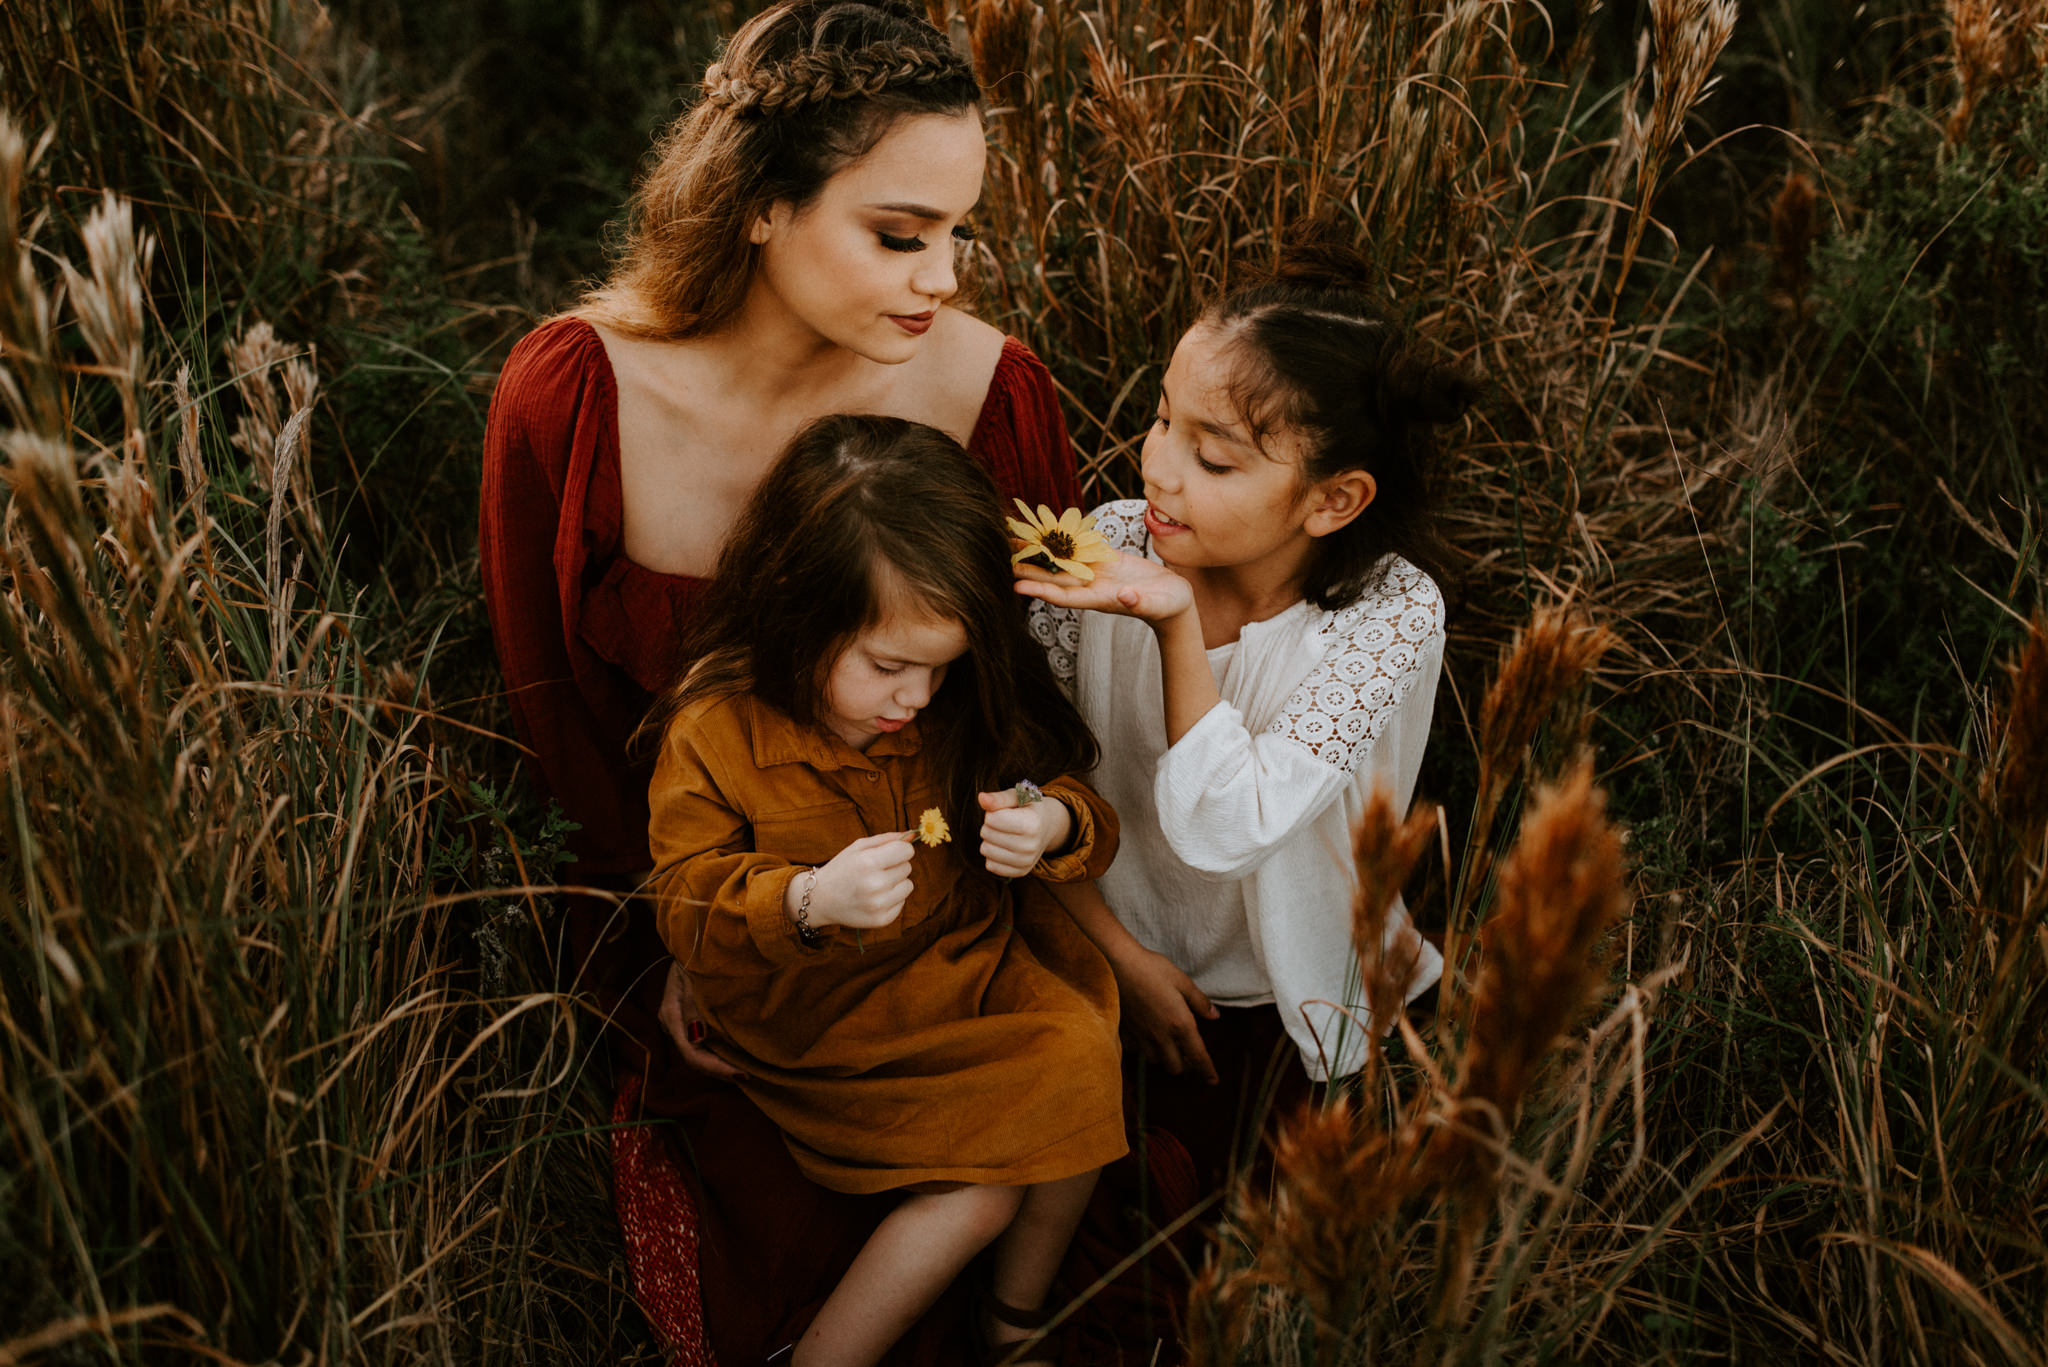 grassy-field-with-flowers-fall-family-session-Kerlyn-Van-Gelder-Photography-Corpus Christi-Photographer